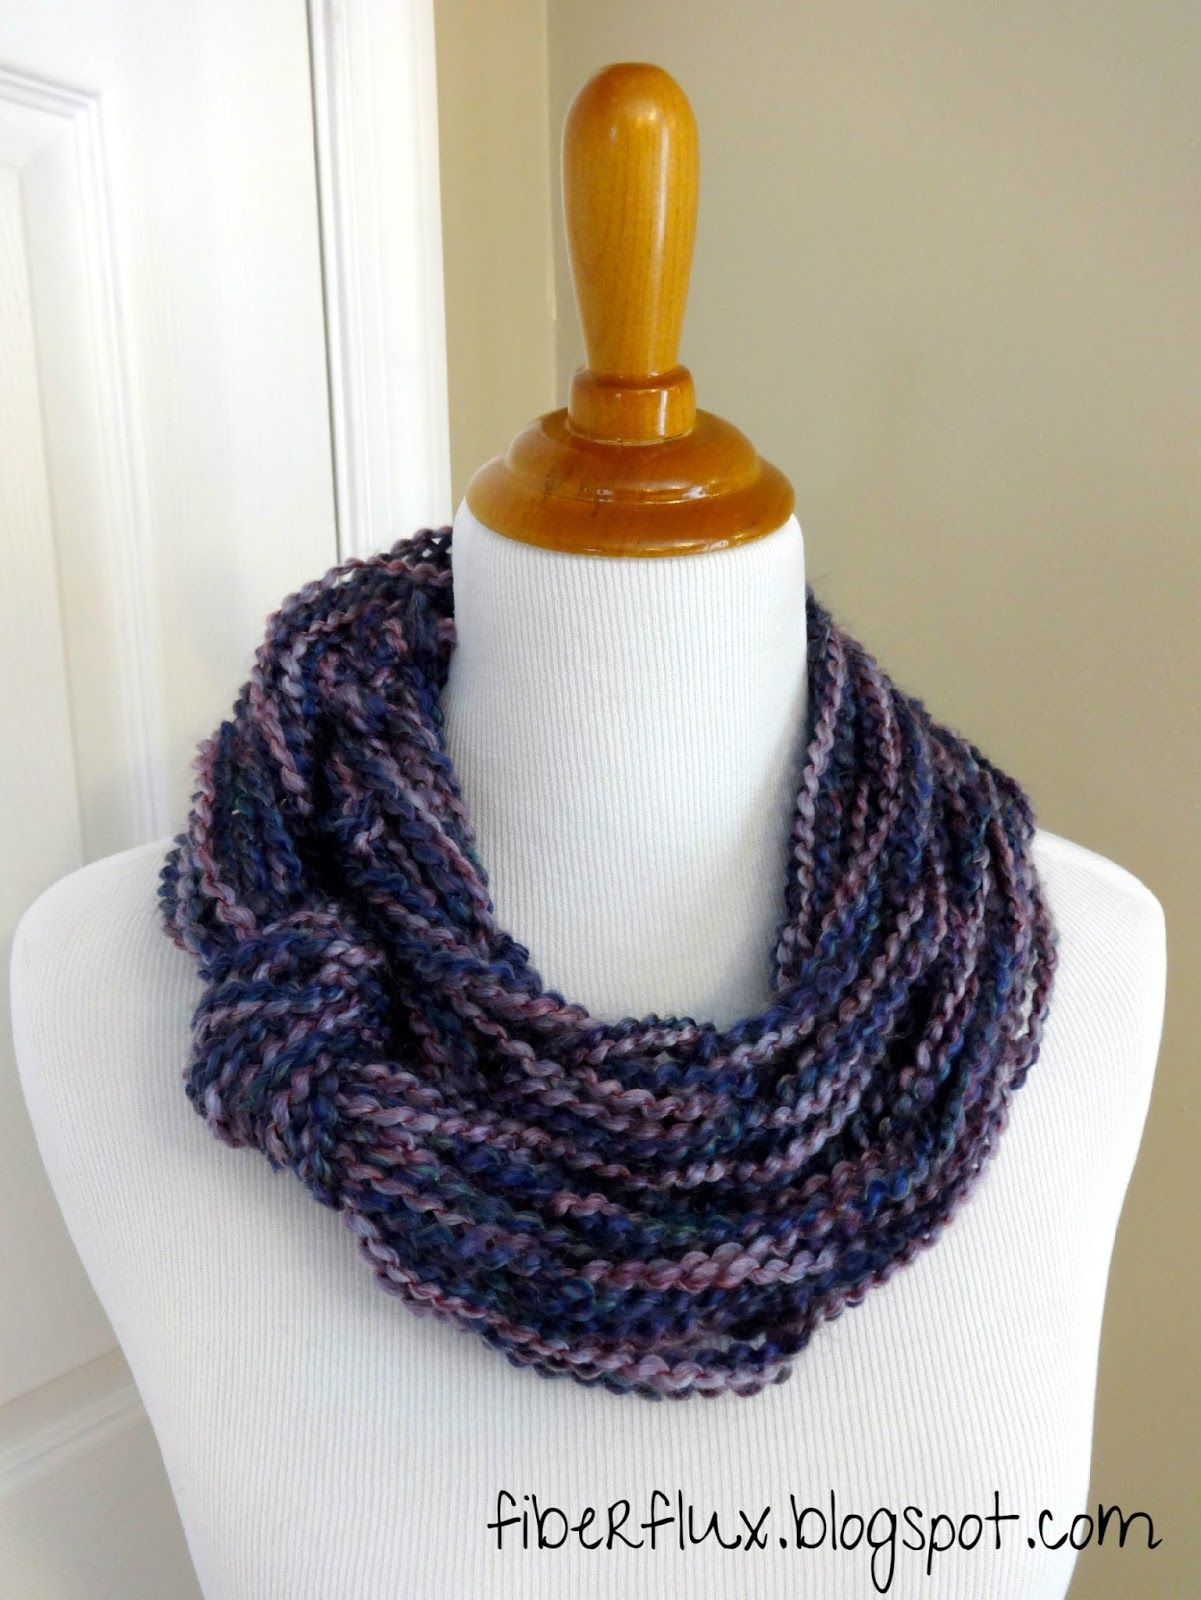 Free Knitting Pattern...Arm Knit Knotted Cowl! | Knit patterns, Arms ...